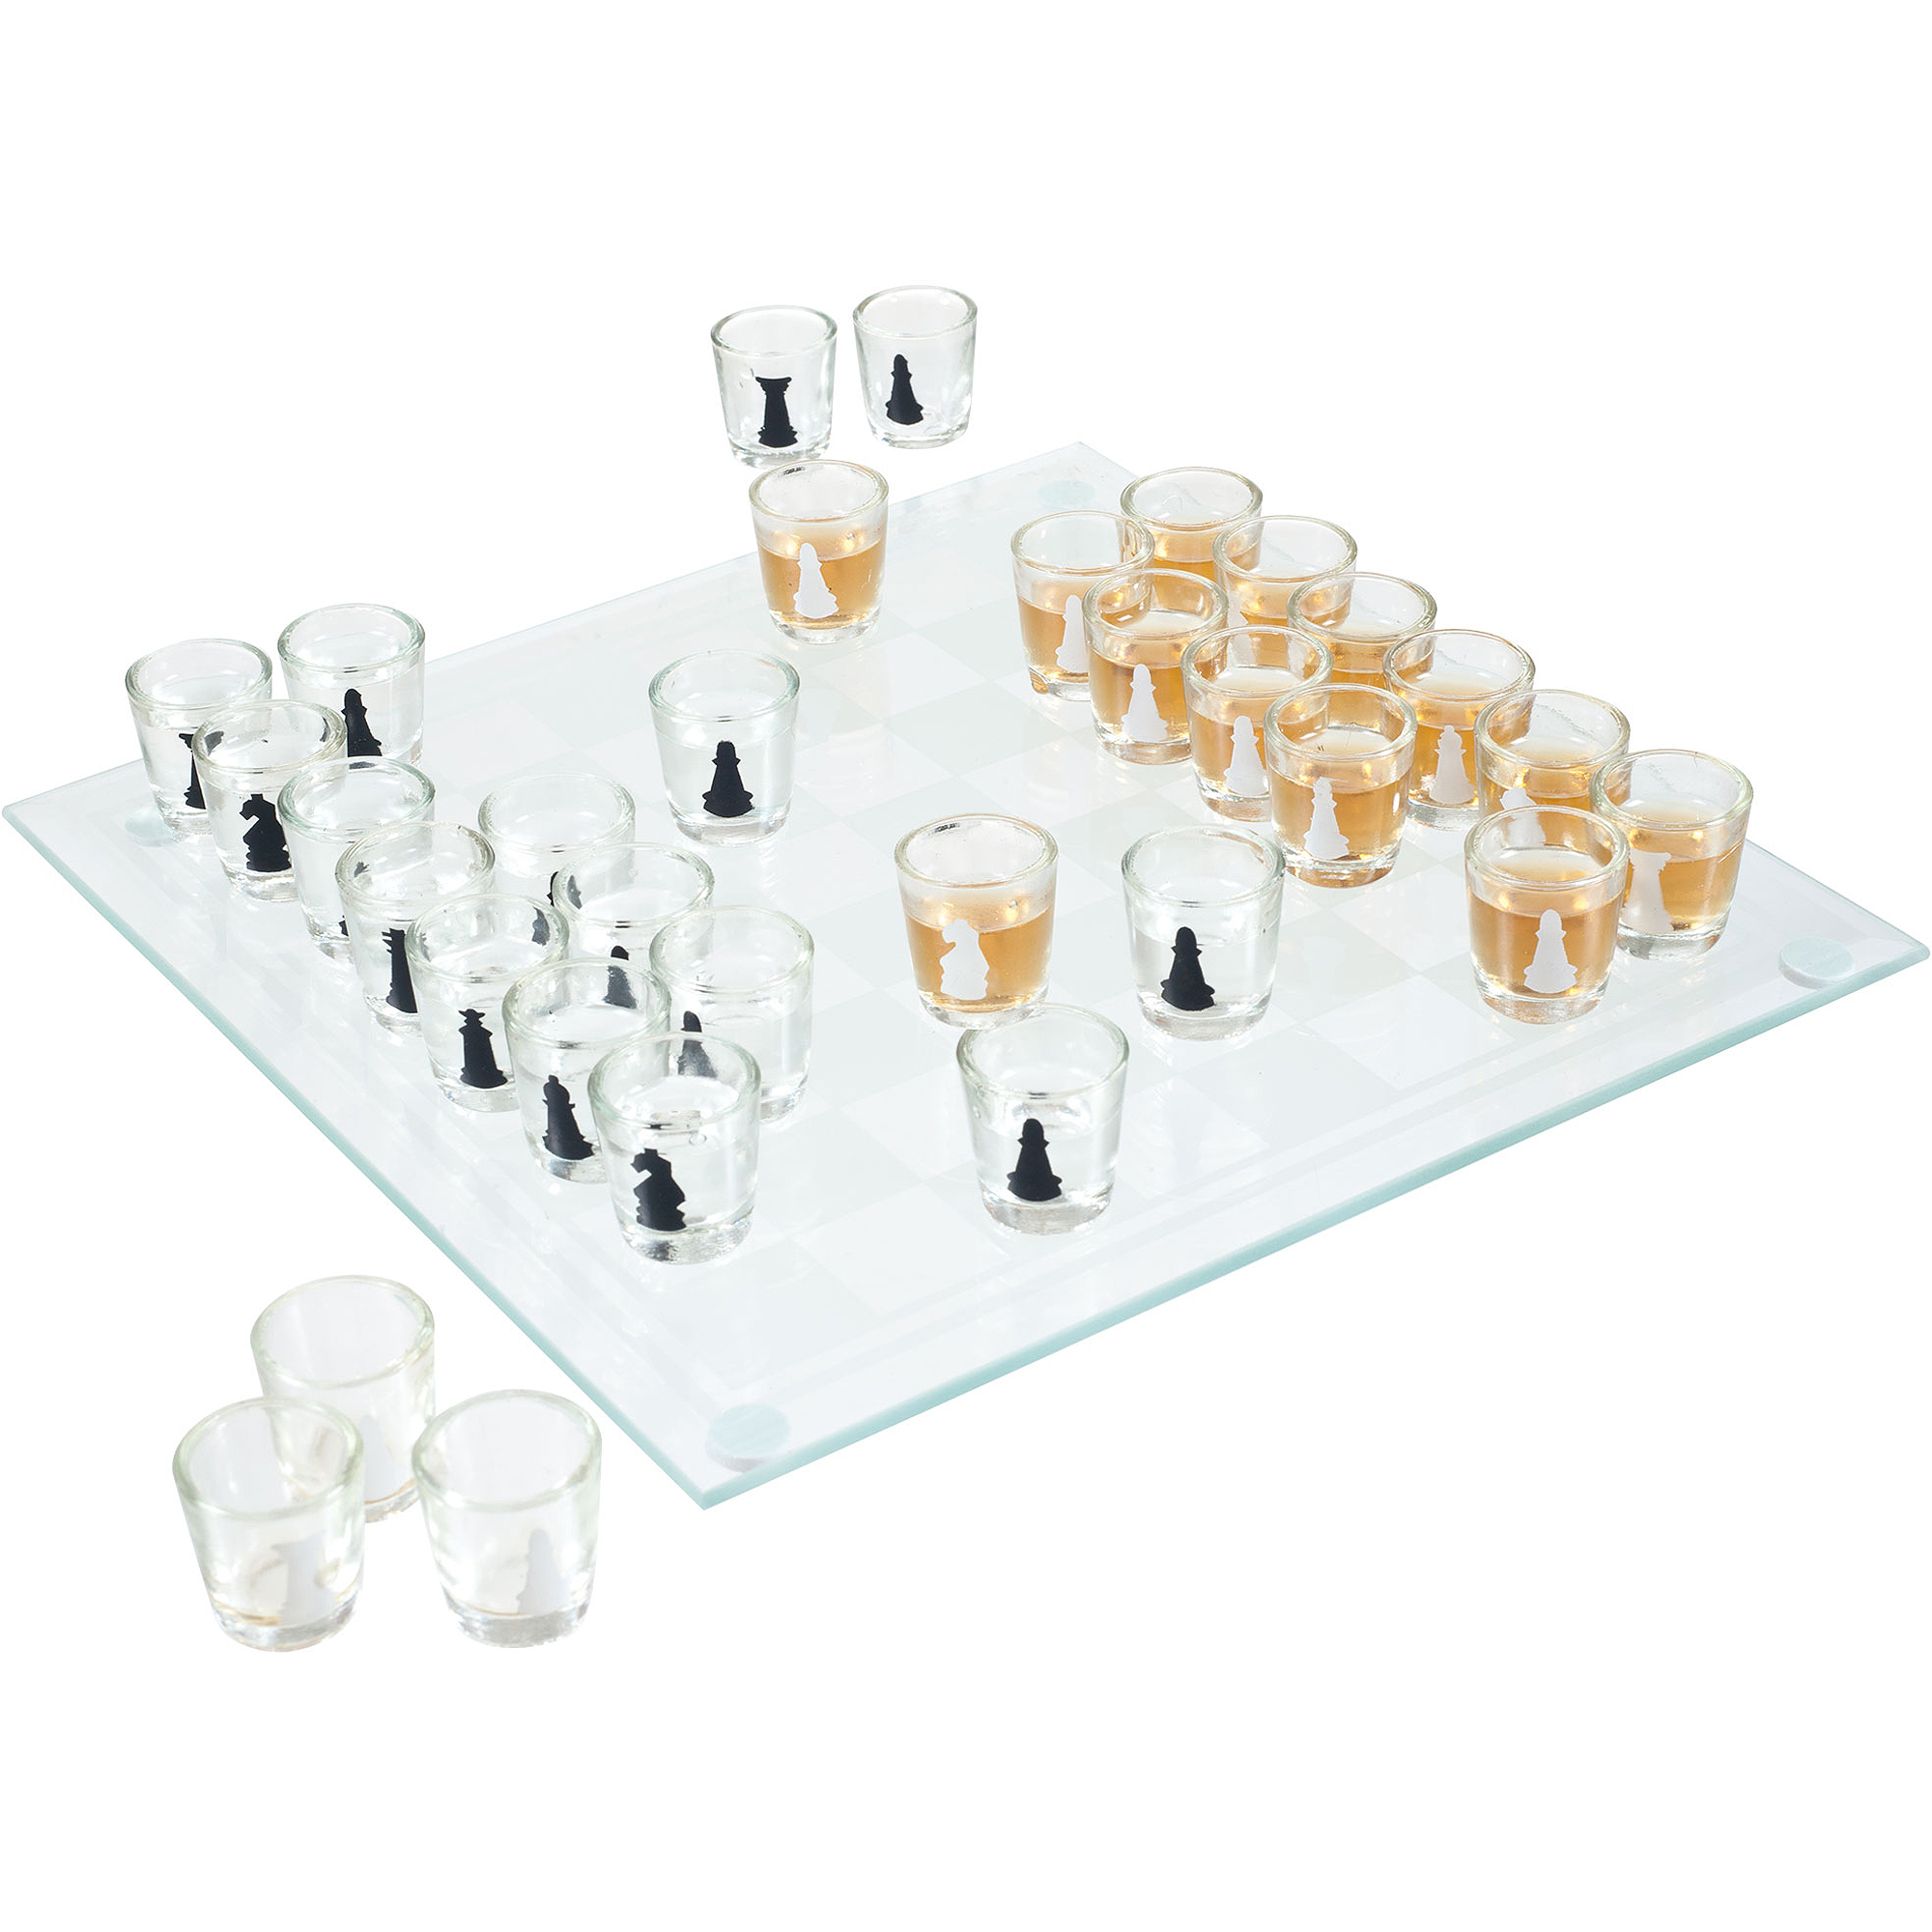 32-Piece Shot Glass Drinking Game Chess Set by Trademark Global LLC